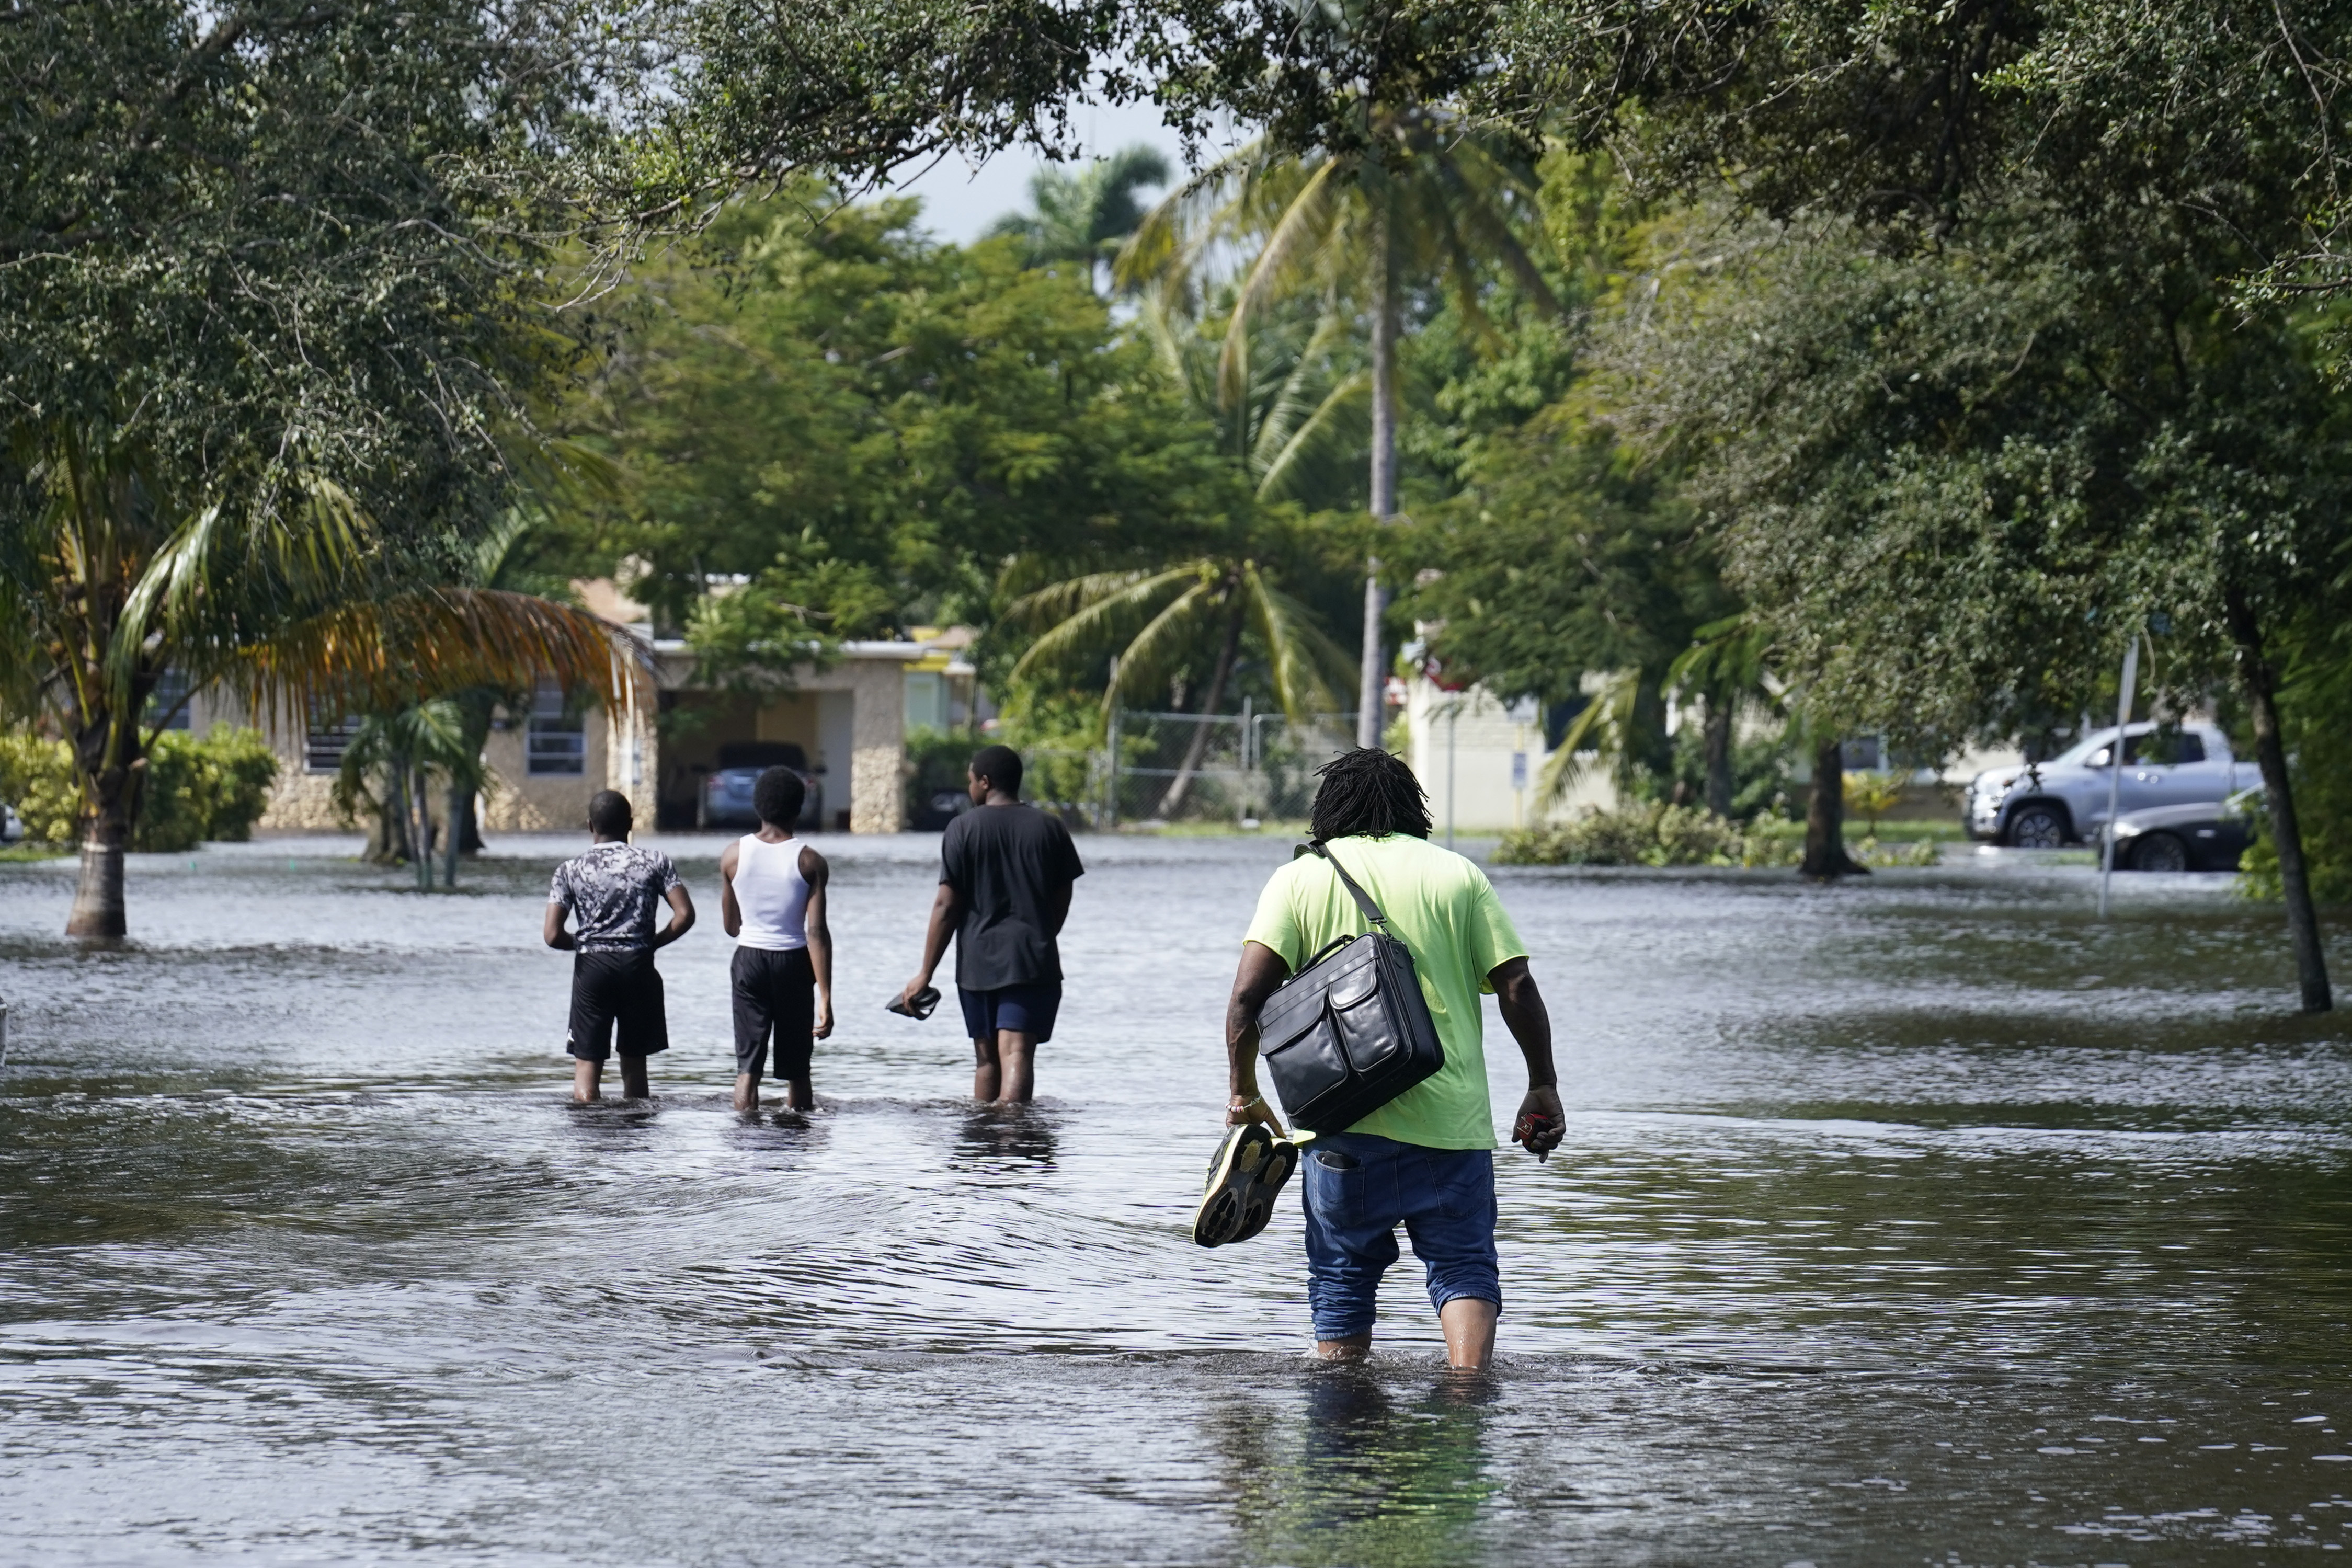 Residents walk a flooded street to reach their homes, Monday, Nov. 9, 2020 in Fort Lauderdale, Fla.